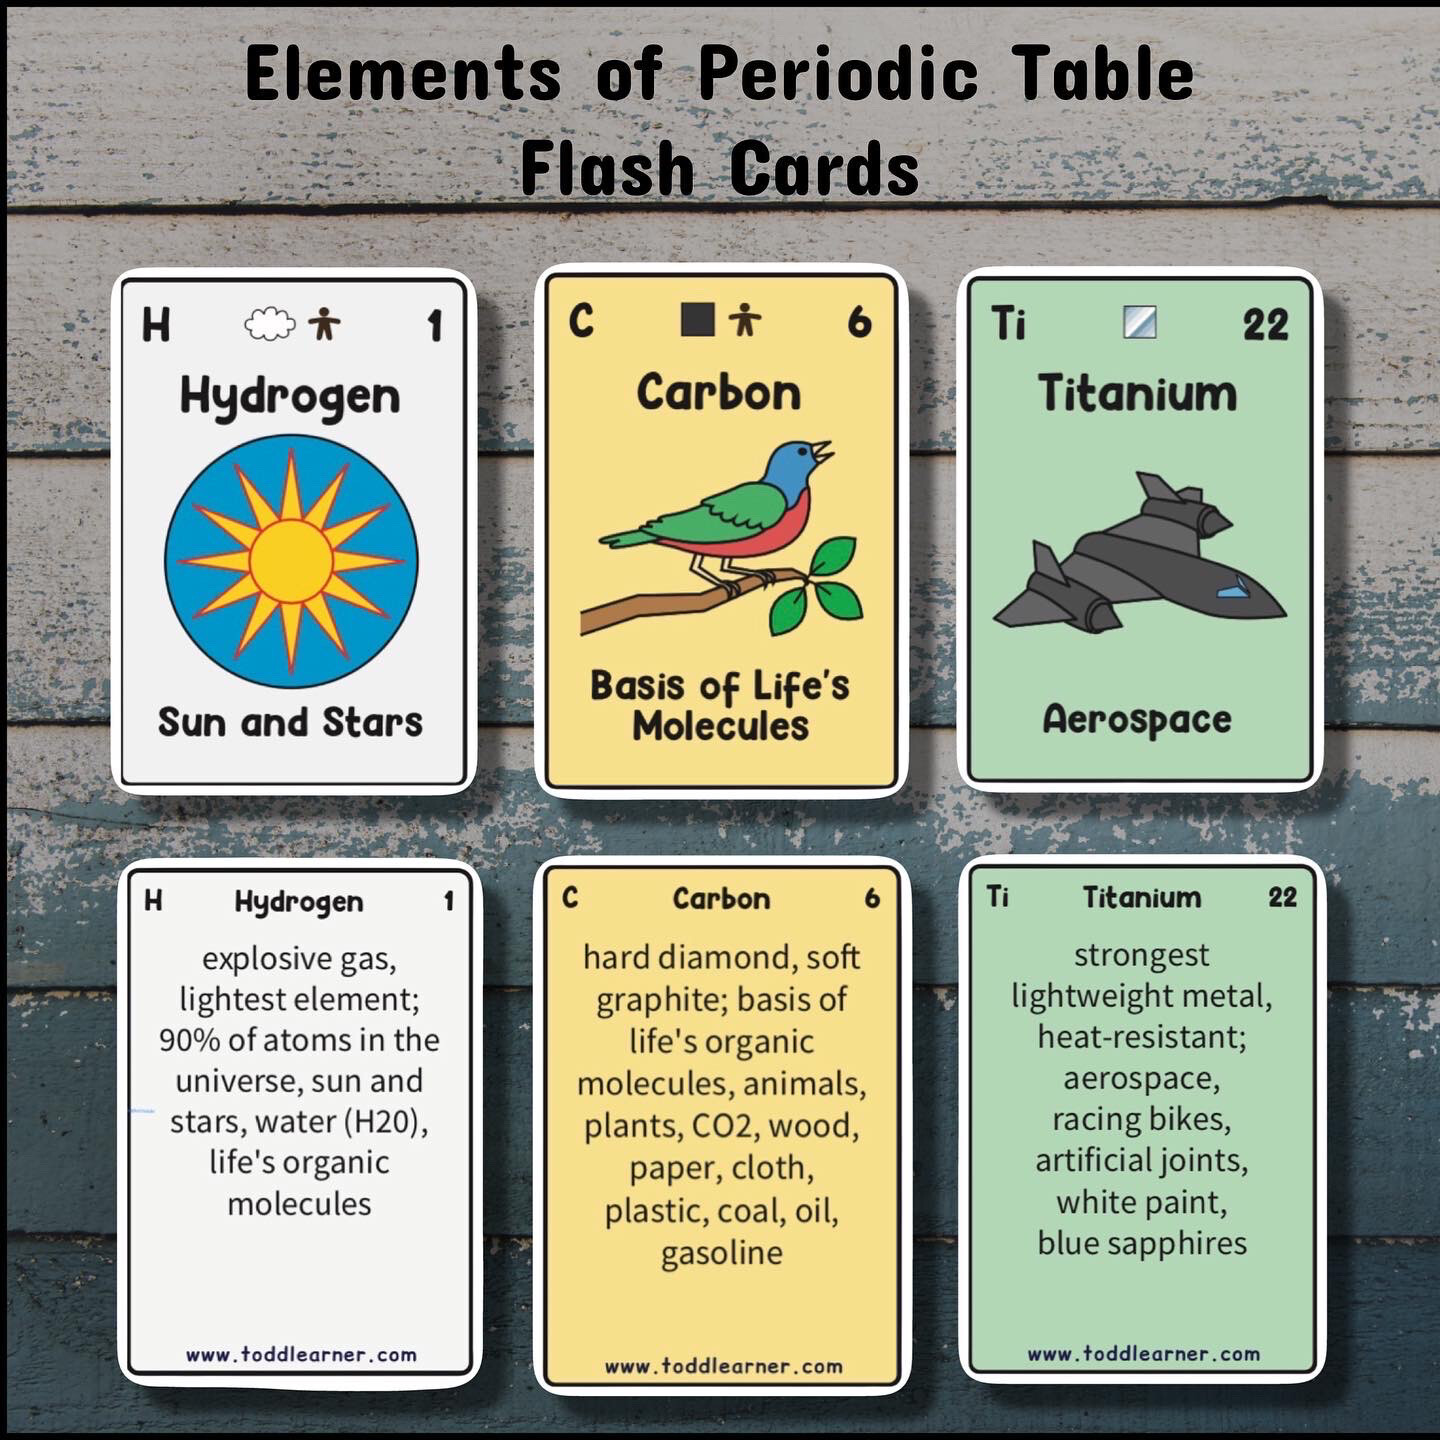 Elements Of The Periodic Table Flash Cards